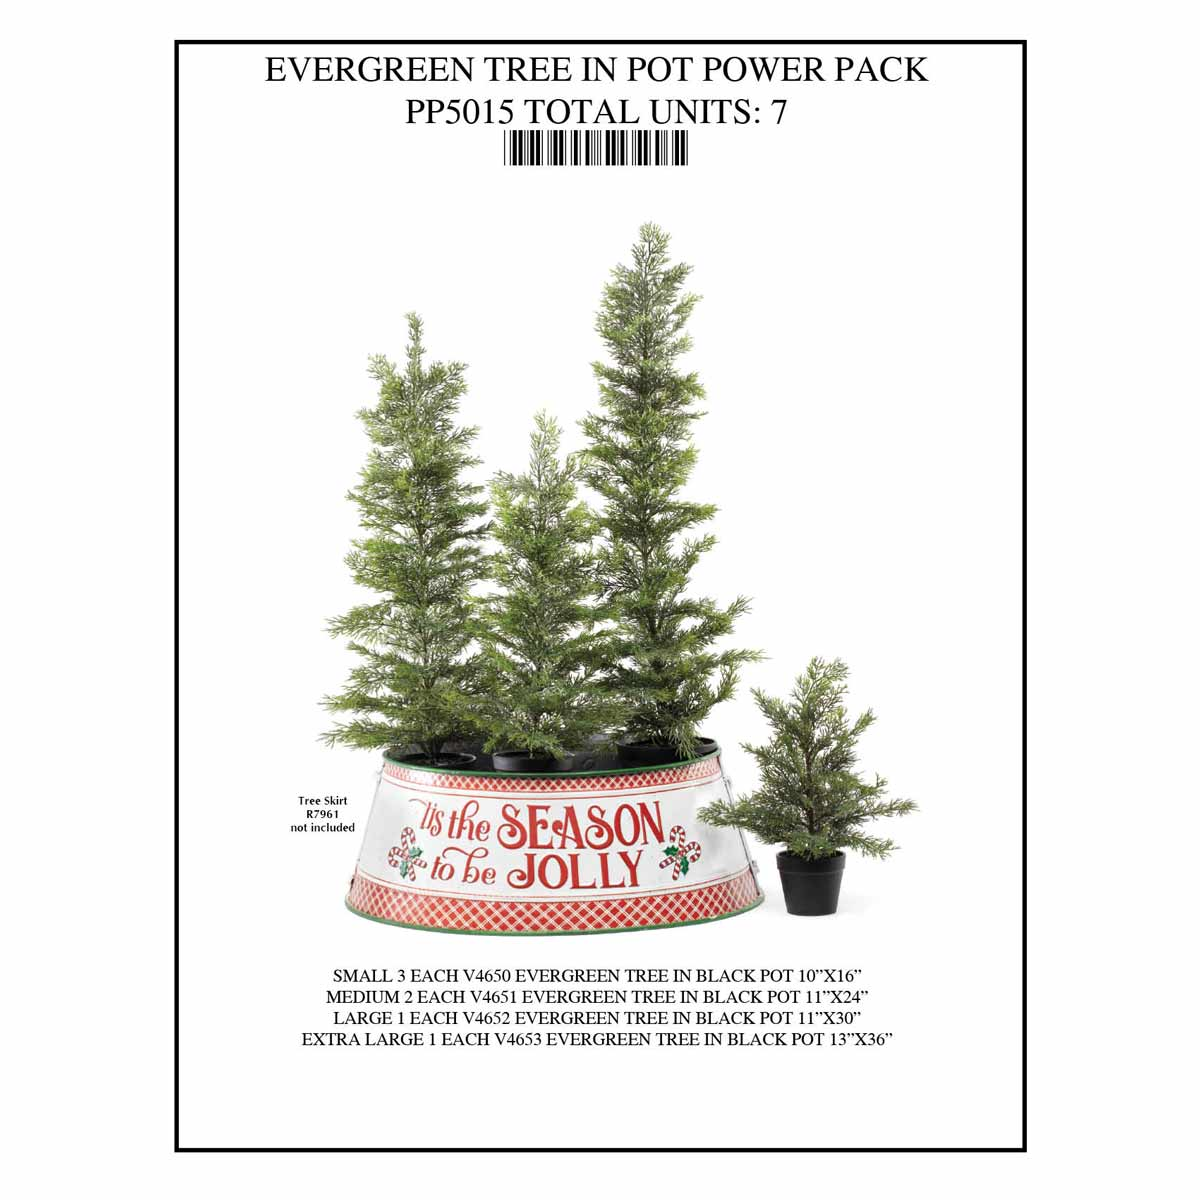 TREE IN POT Power Pack 7 Units